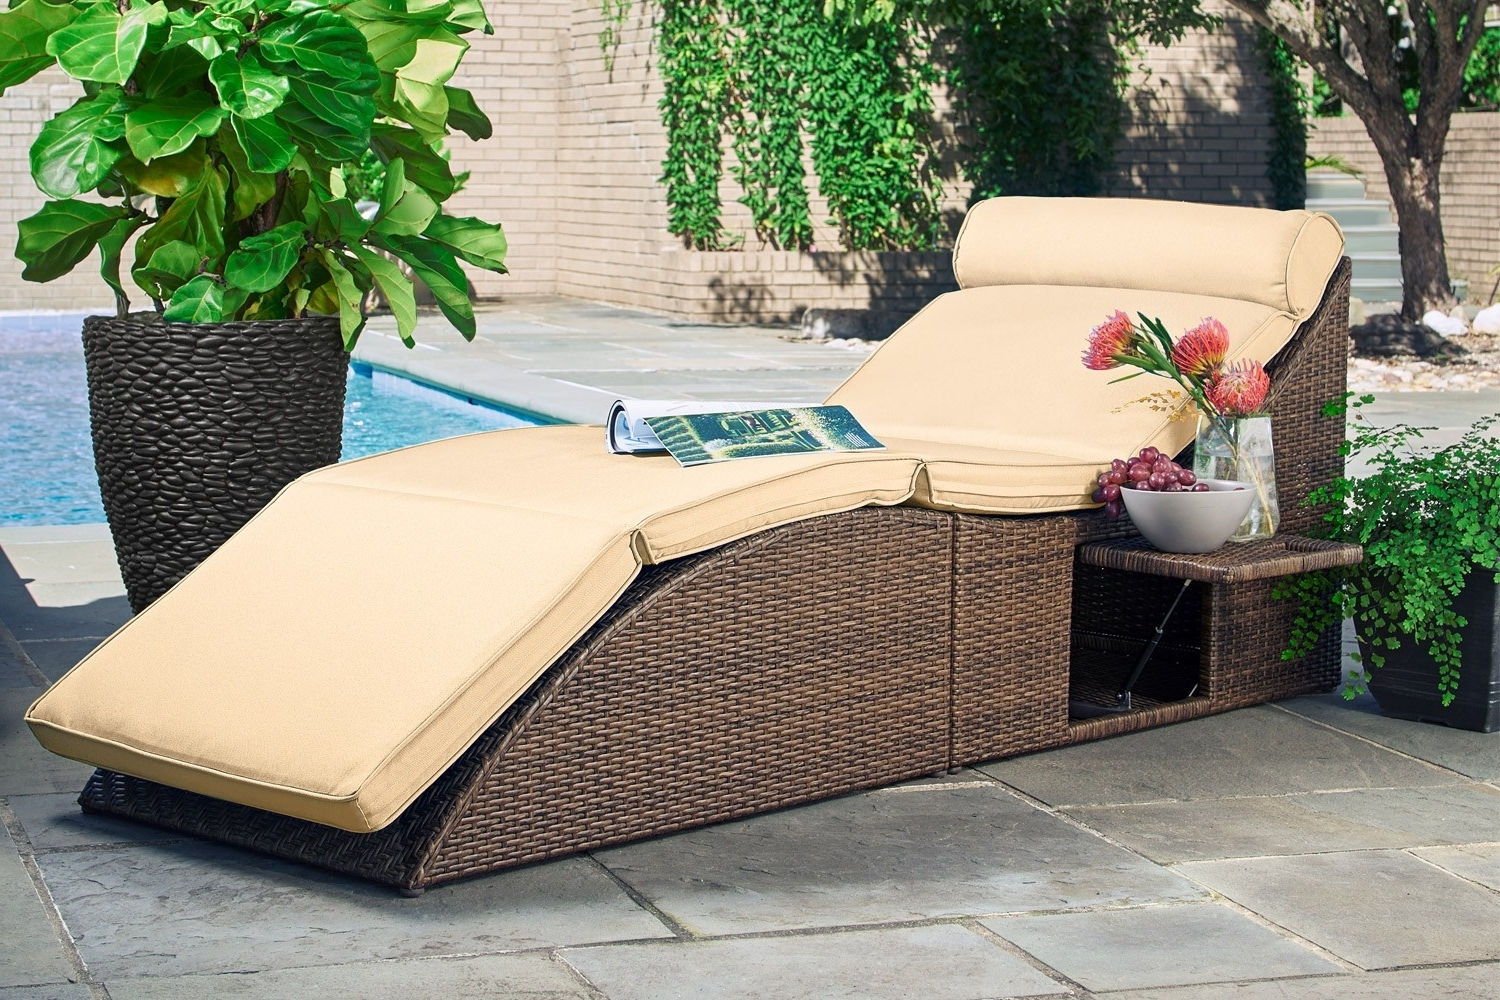 2017 Sofa Bed Chaises Throughout Outdoor Futon Sofa Bed Chaise Lounger Bodega – Outdoor Futon (View 1 of 15)